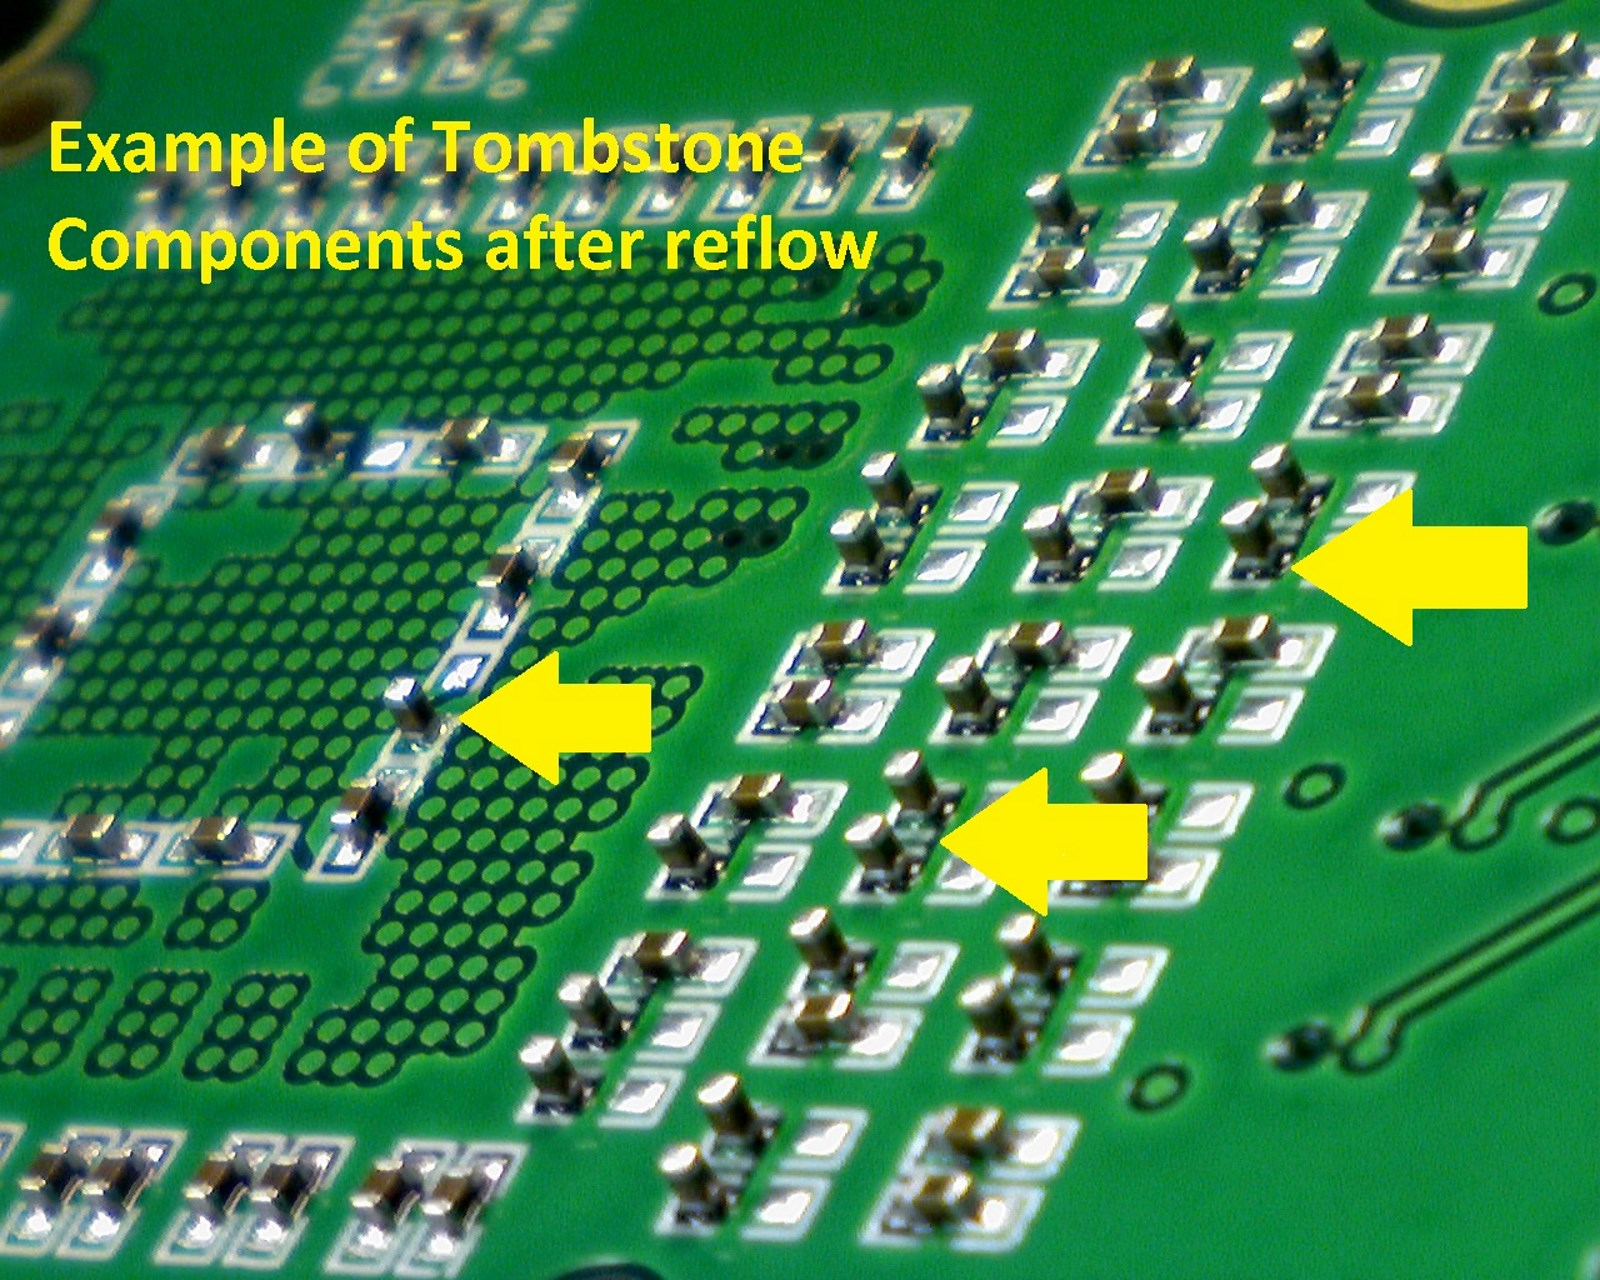 Anatomy Of Ate Pcb Assembly Ee Times Custom Made Green Board Electronic Circuit Boards Pcba Fig 4 Tombstones Are Lifted Components From One Side This Flaw Could Be Due To Inaccurate Stencil Design Among Other Factors